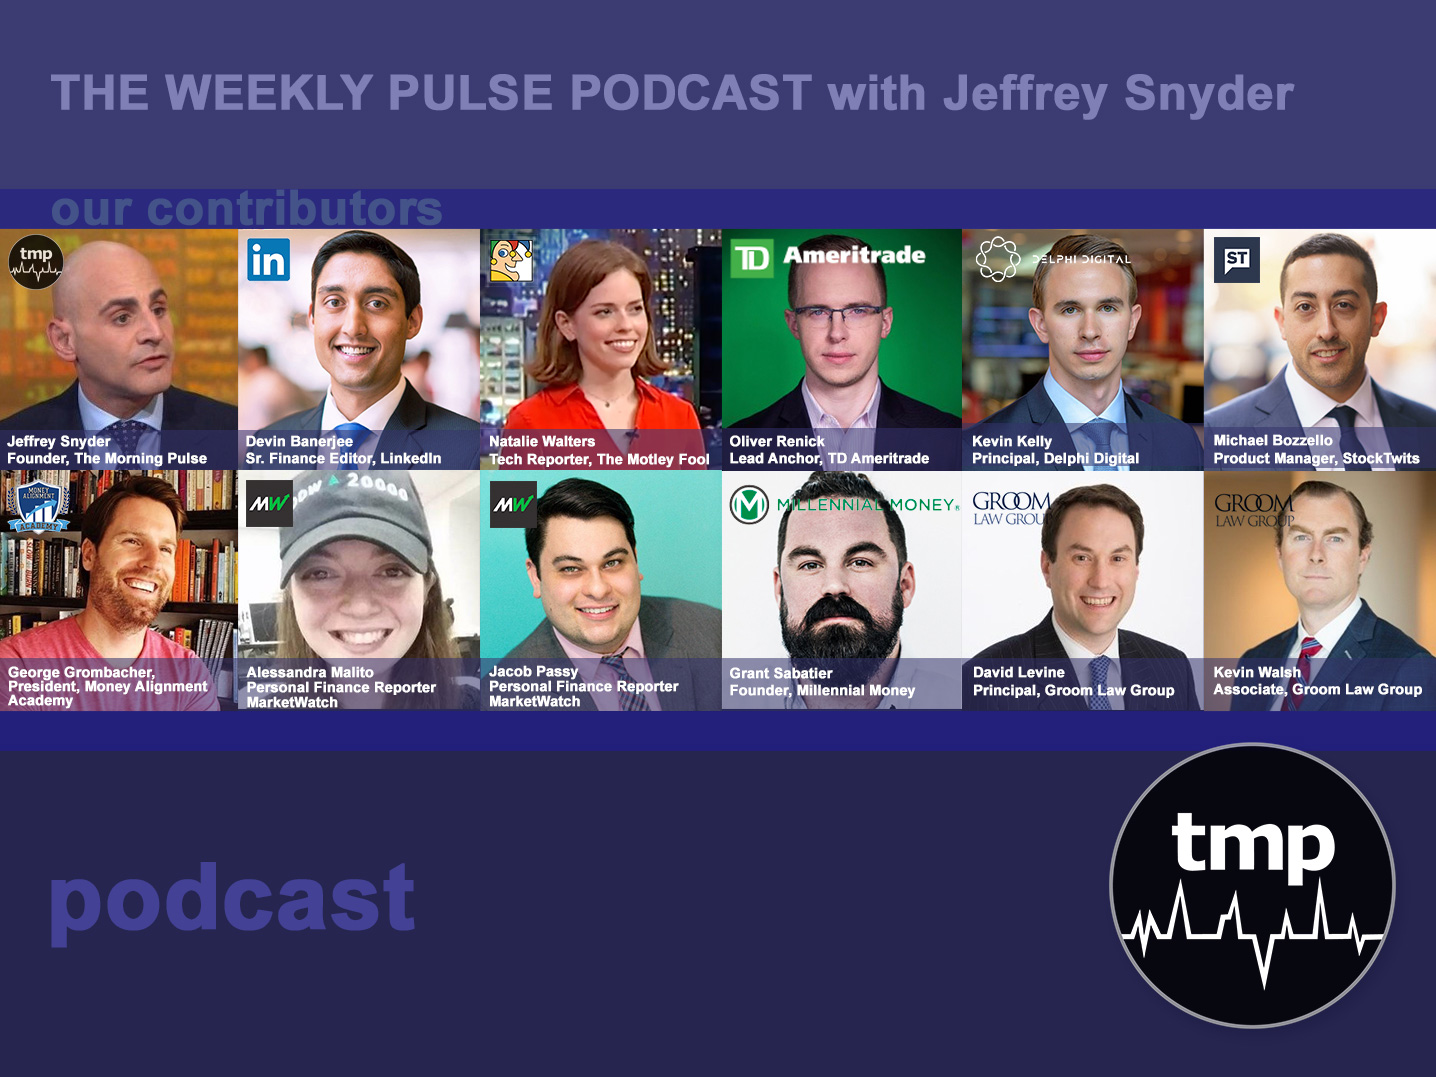 (Podcast) 3/31/2019 In this episode: (1) Drug prices on the rise, (2) No Savings for Half of Older Adults, (3) He Said/She Said – Apple's new media services – should Netflix be nervous?,  & more.